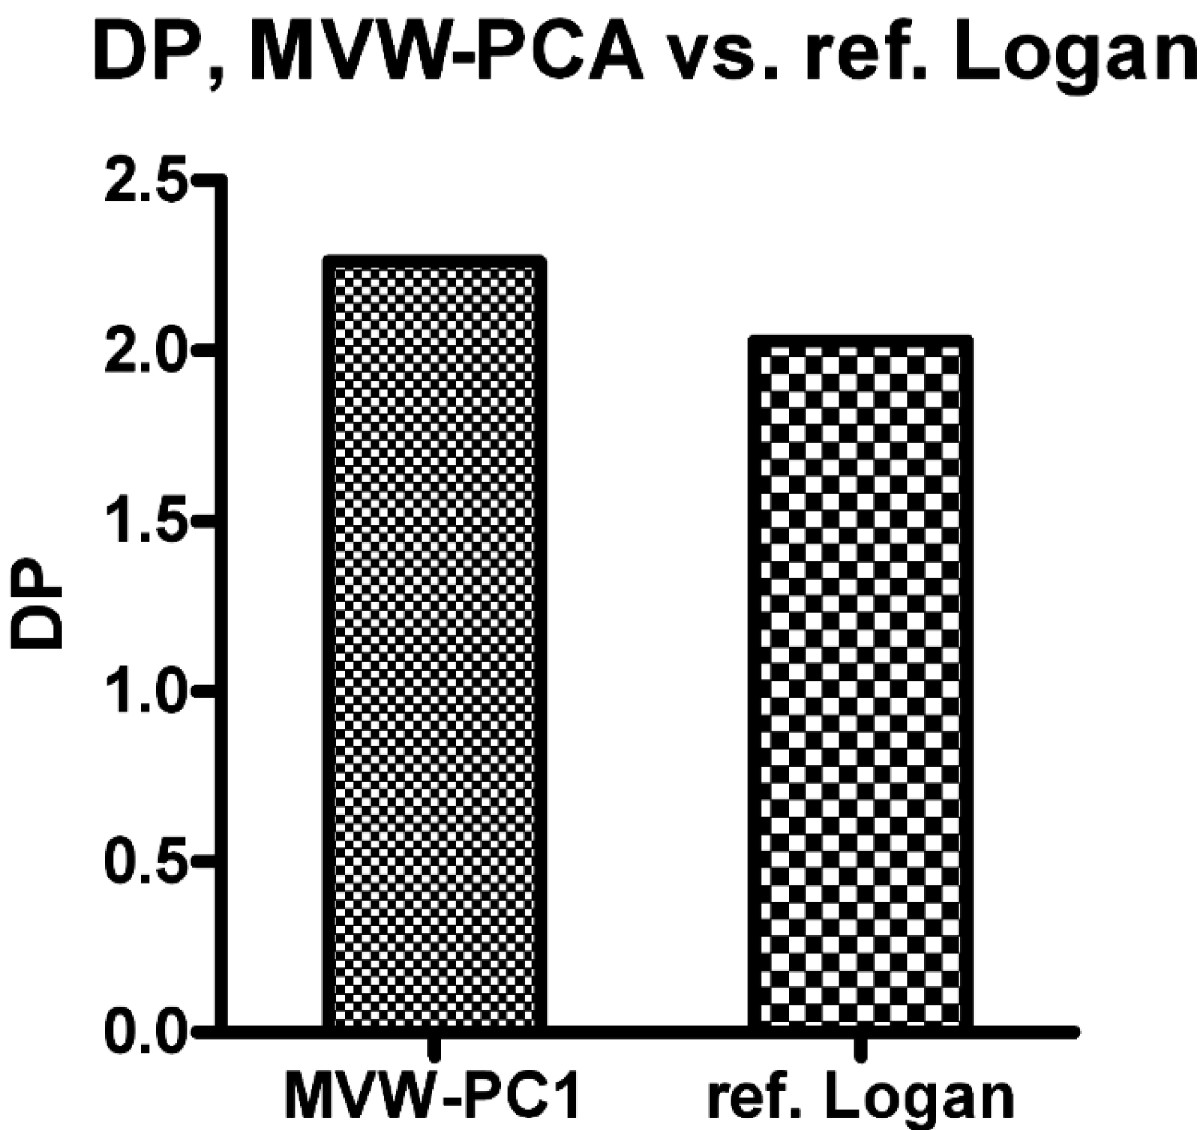 https://static-content.springer.com/image/art%3A10.1186%2F1471-2377-9-2/MediaObjects/12883_2008_Article_216_Fig7_HTML.jpg